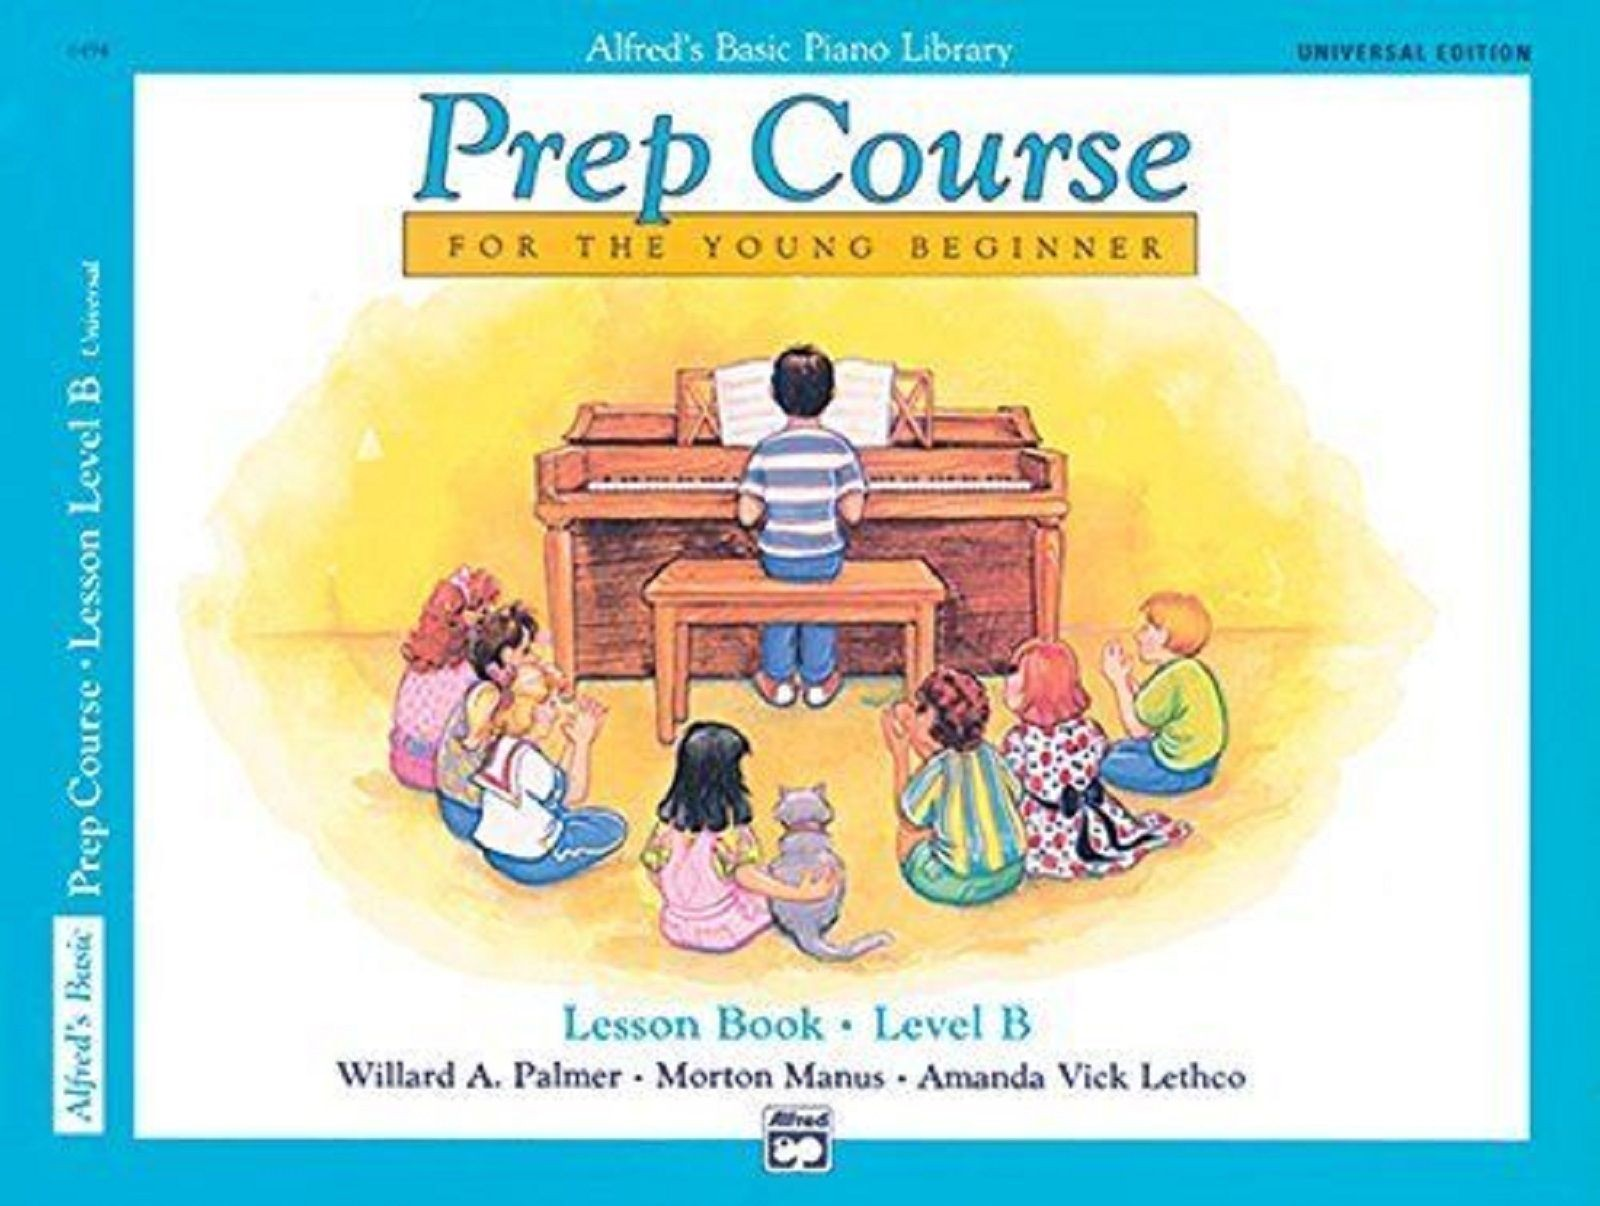 Alfreds Basic Piano Library Prep Course Lesson Book Level B Beginner CD S136